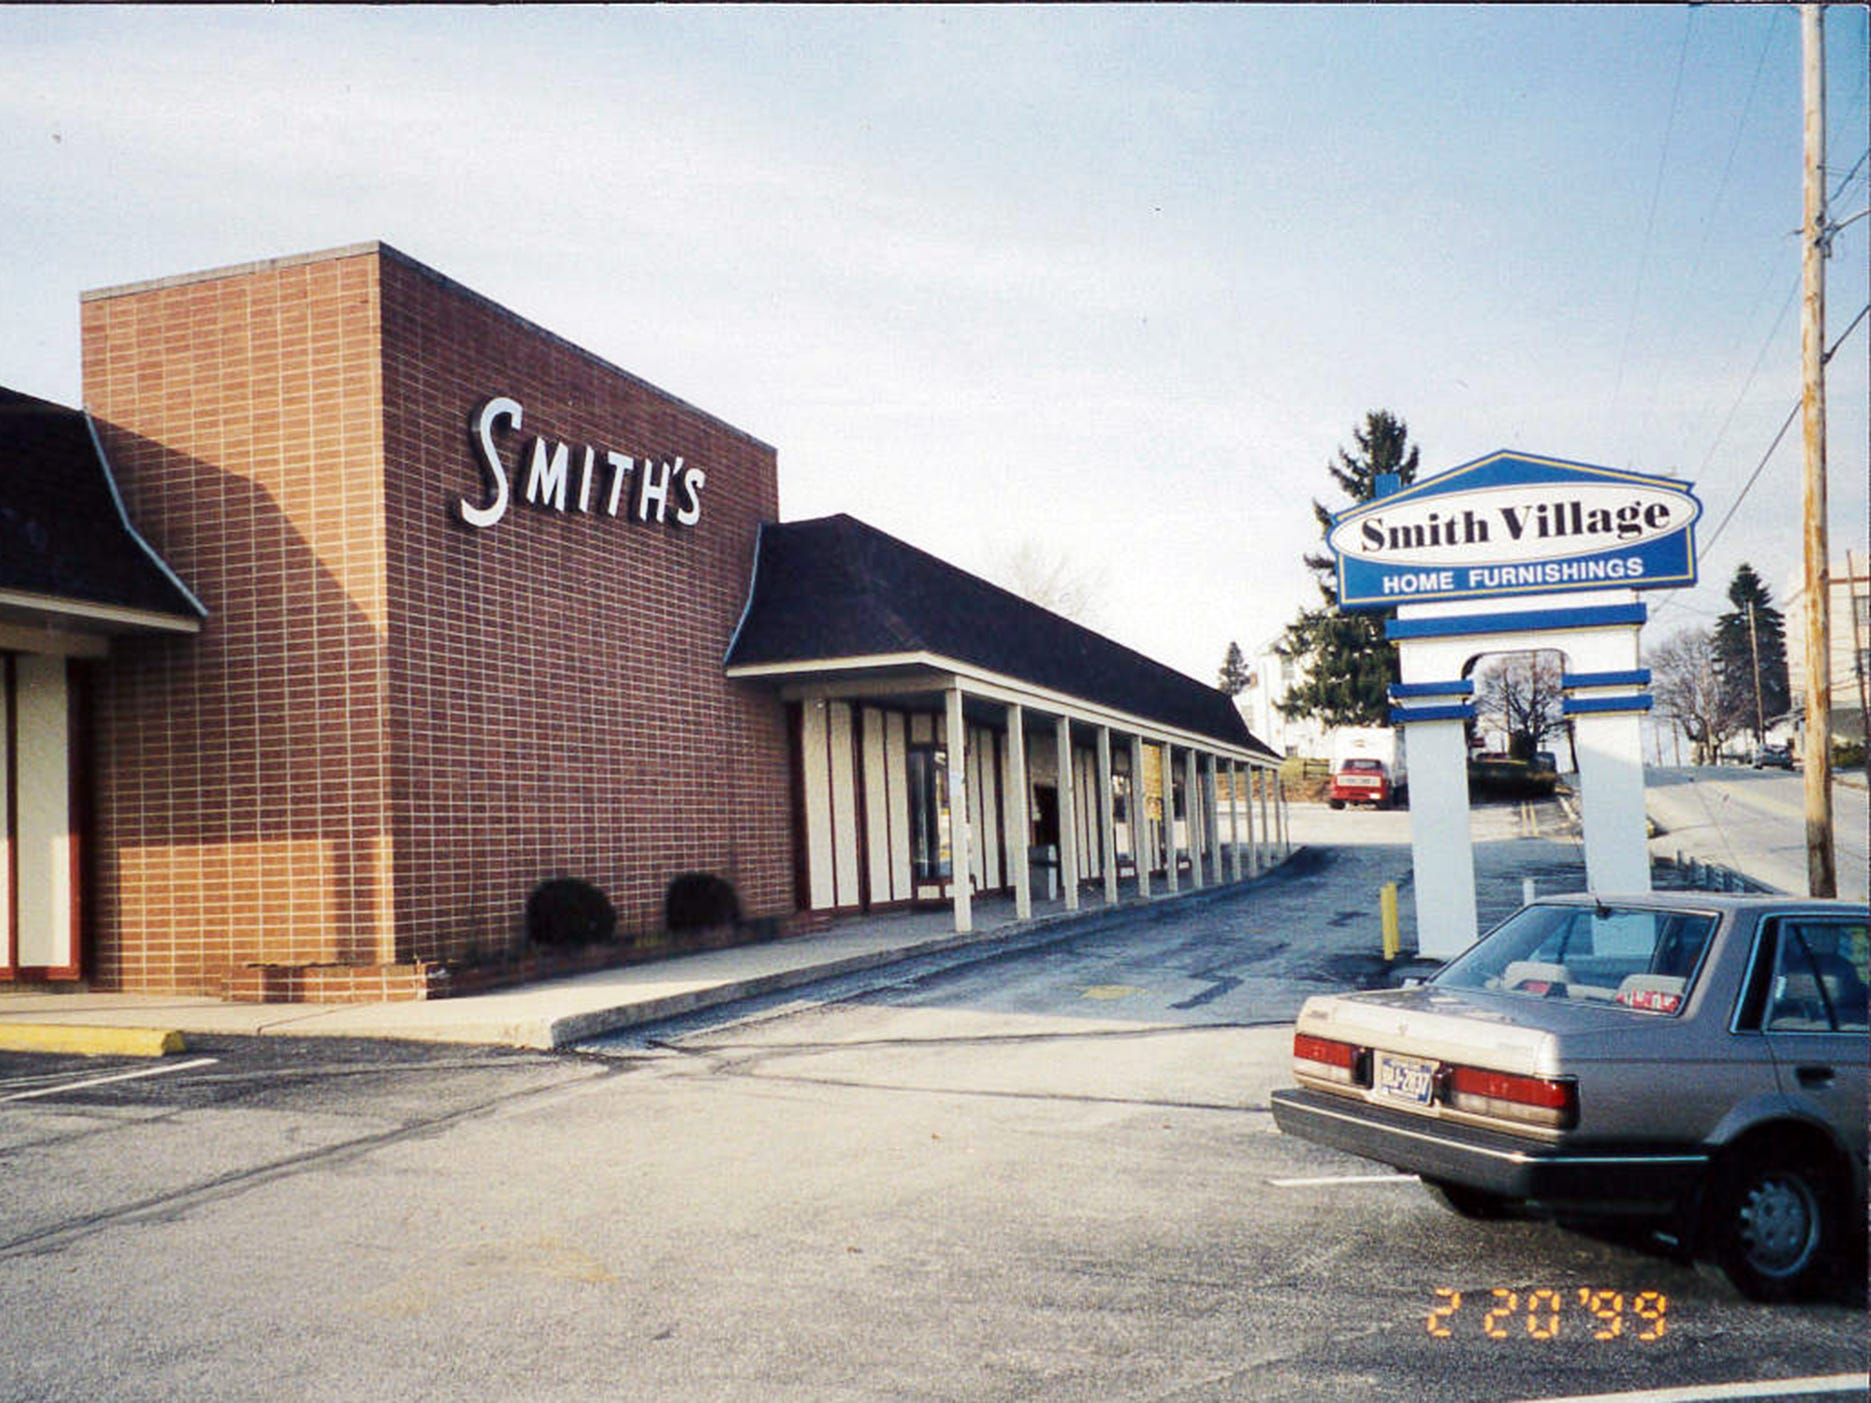 This is Smith Village in Jacobus as it looked in 1999 before the current makeover. The main store received a complete renovation in 1984. At the same time, the hardware department was eliminated, and replaced with a new furniture Clearance Center & Outlet. (This store is now located across the street in the former auto sales building and  known as the Furniture Outlet.)